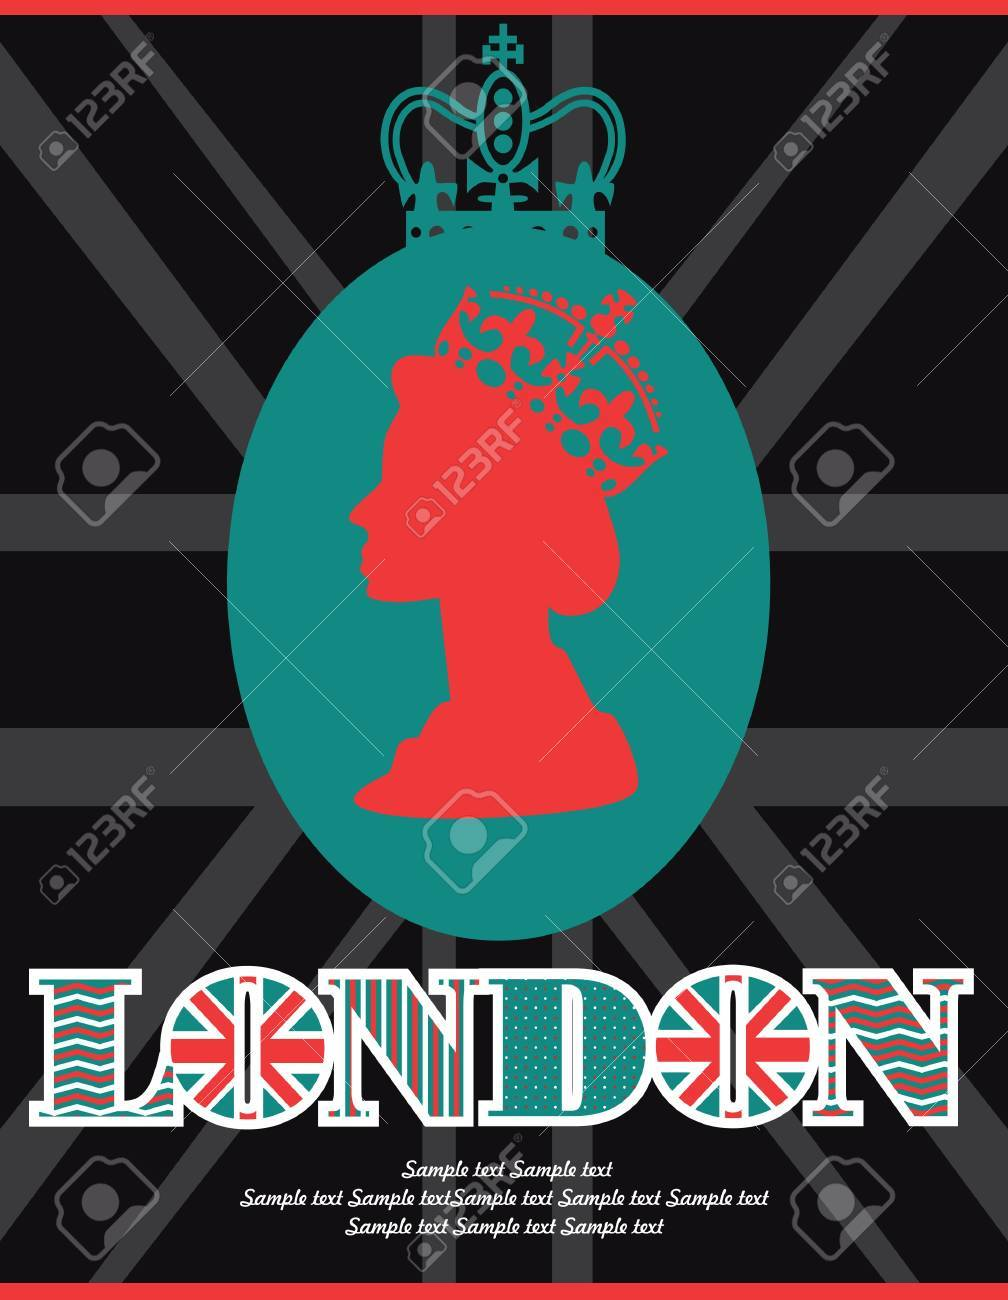 London card design. vector illustration Stock Vector - 19252261